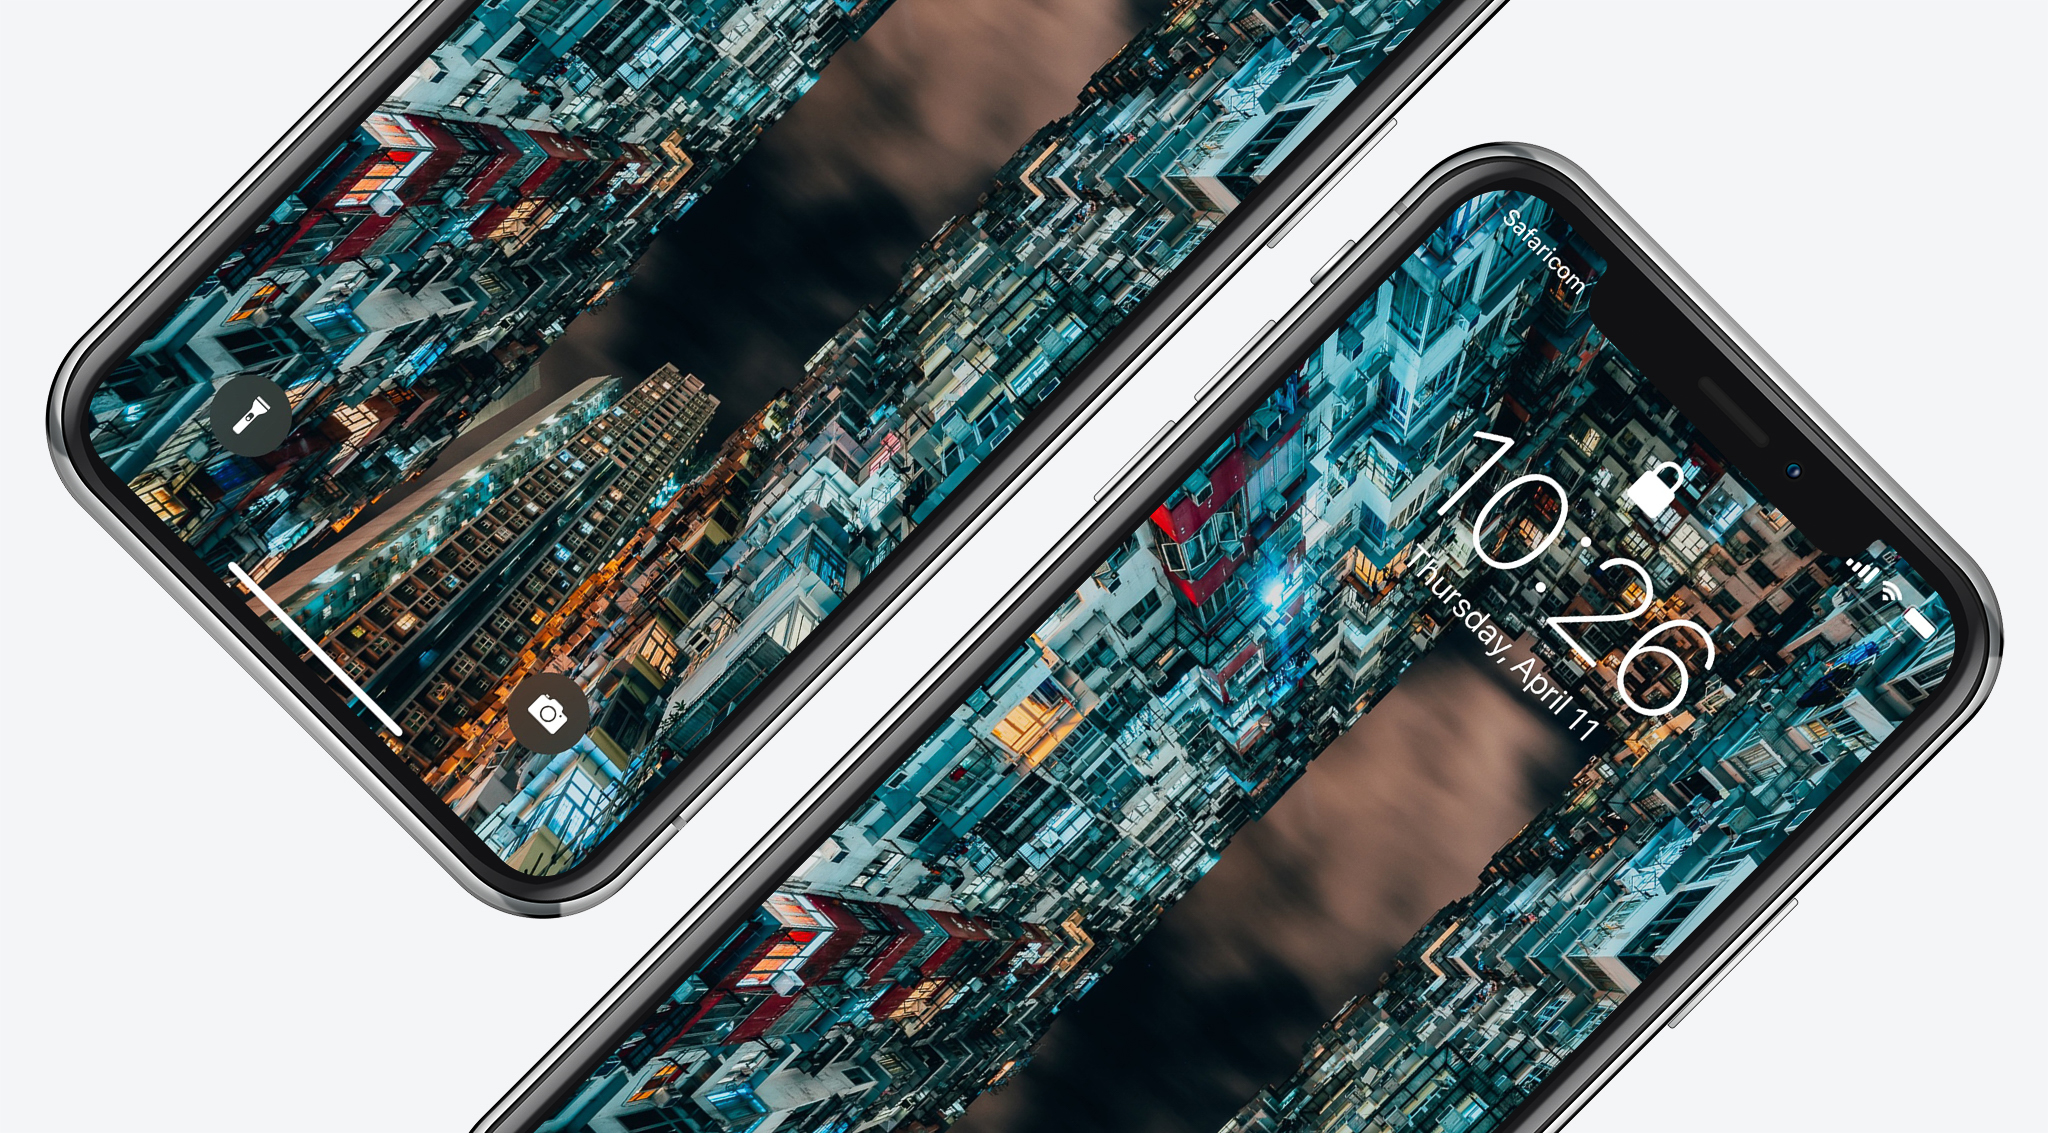 392_Racks [by @The_Mentalyst]_Wallpaper_iPhones.jpg